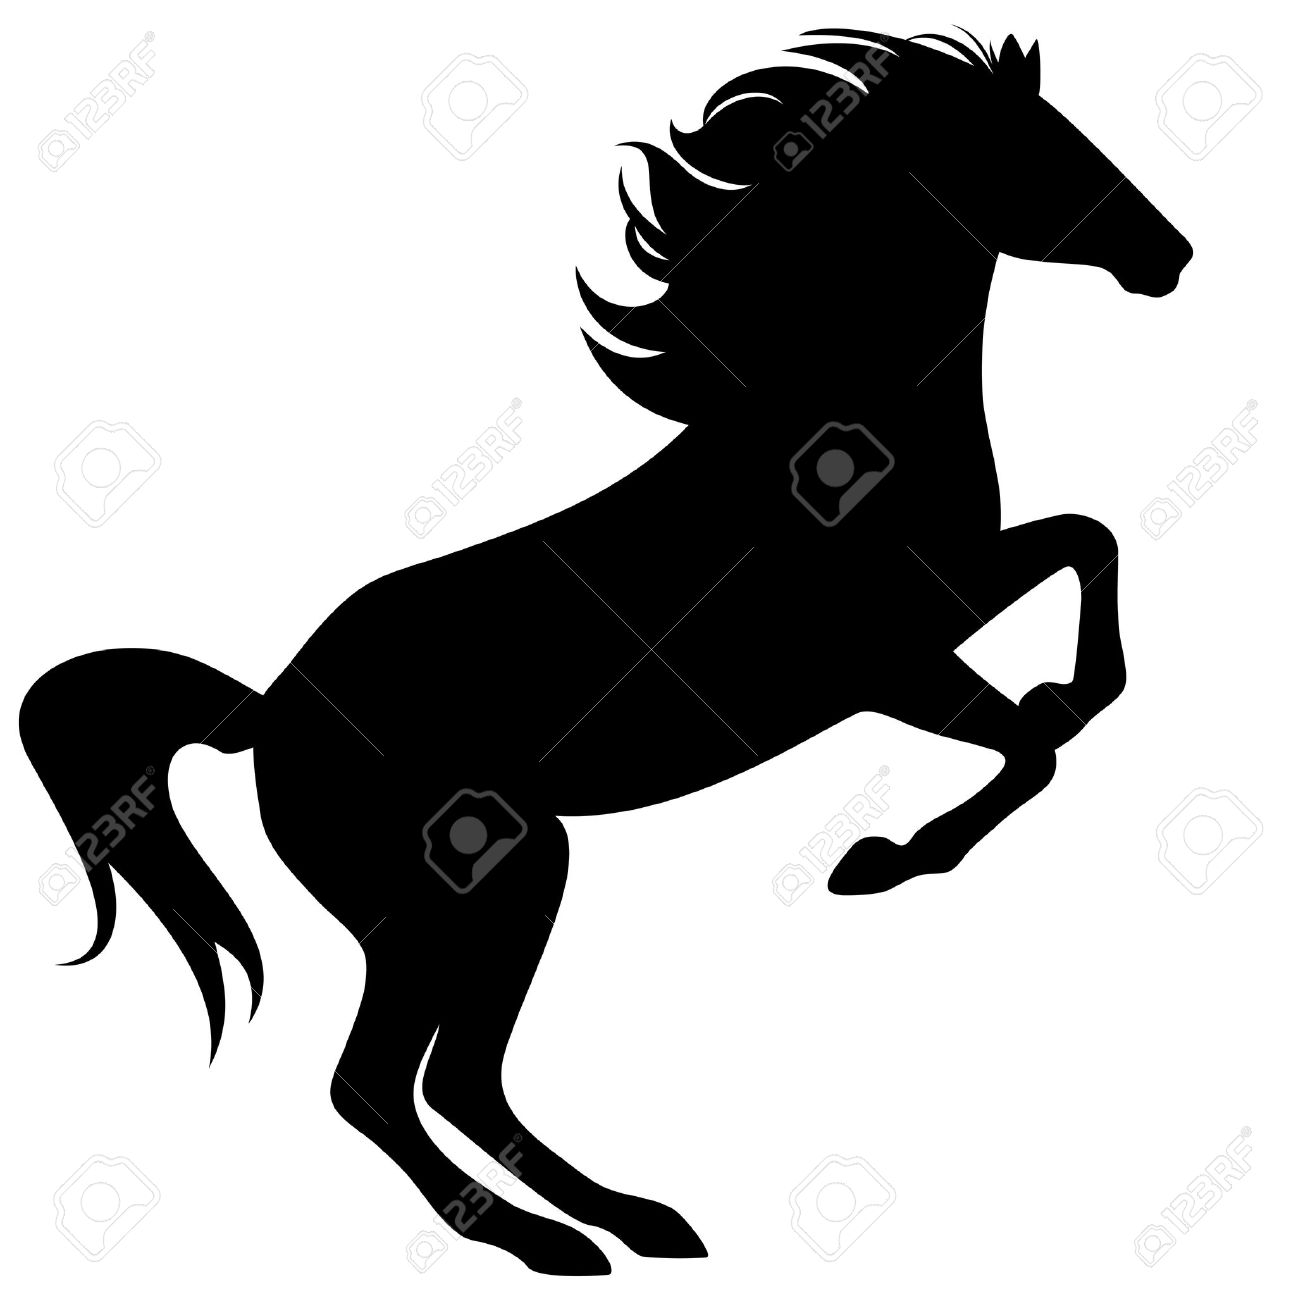 hight resolution of rearing horse fine silhouette black over white stock vector 15475465